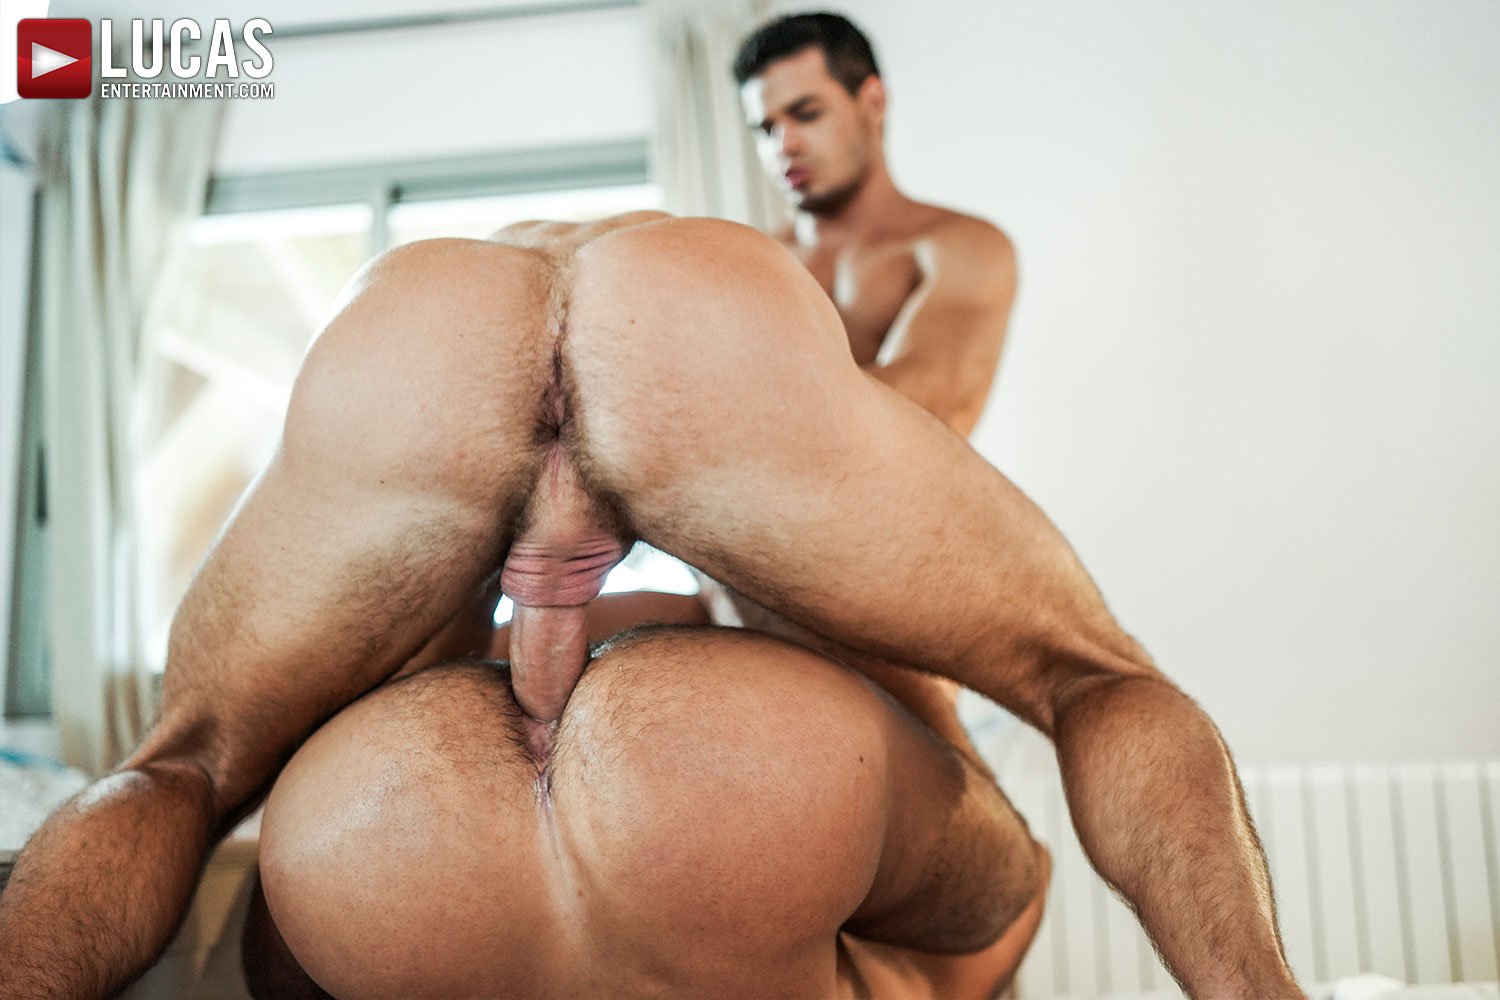 videos de gays en español gay escort amsterdam